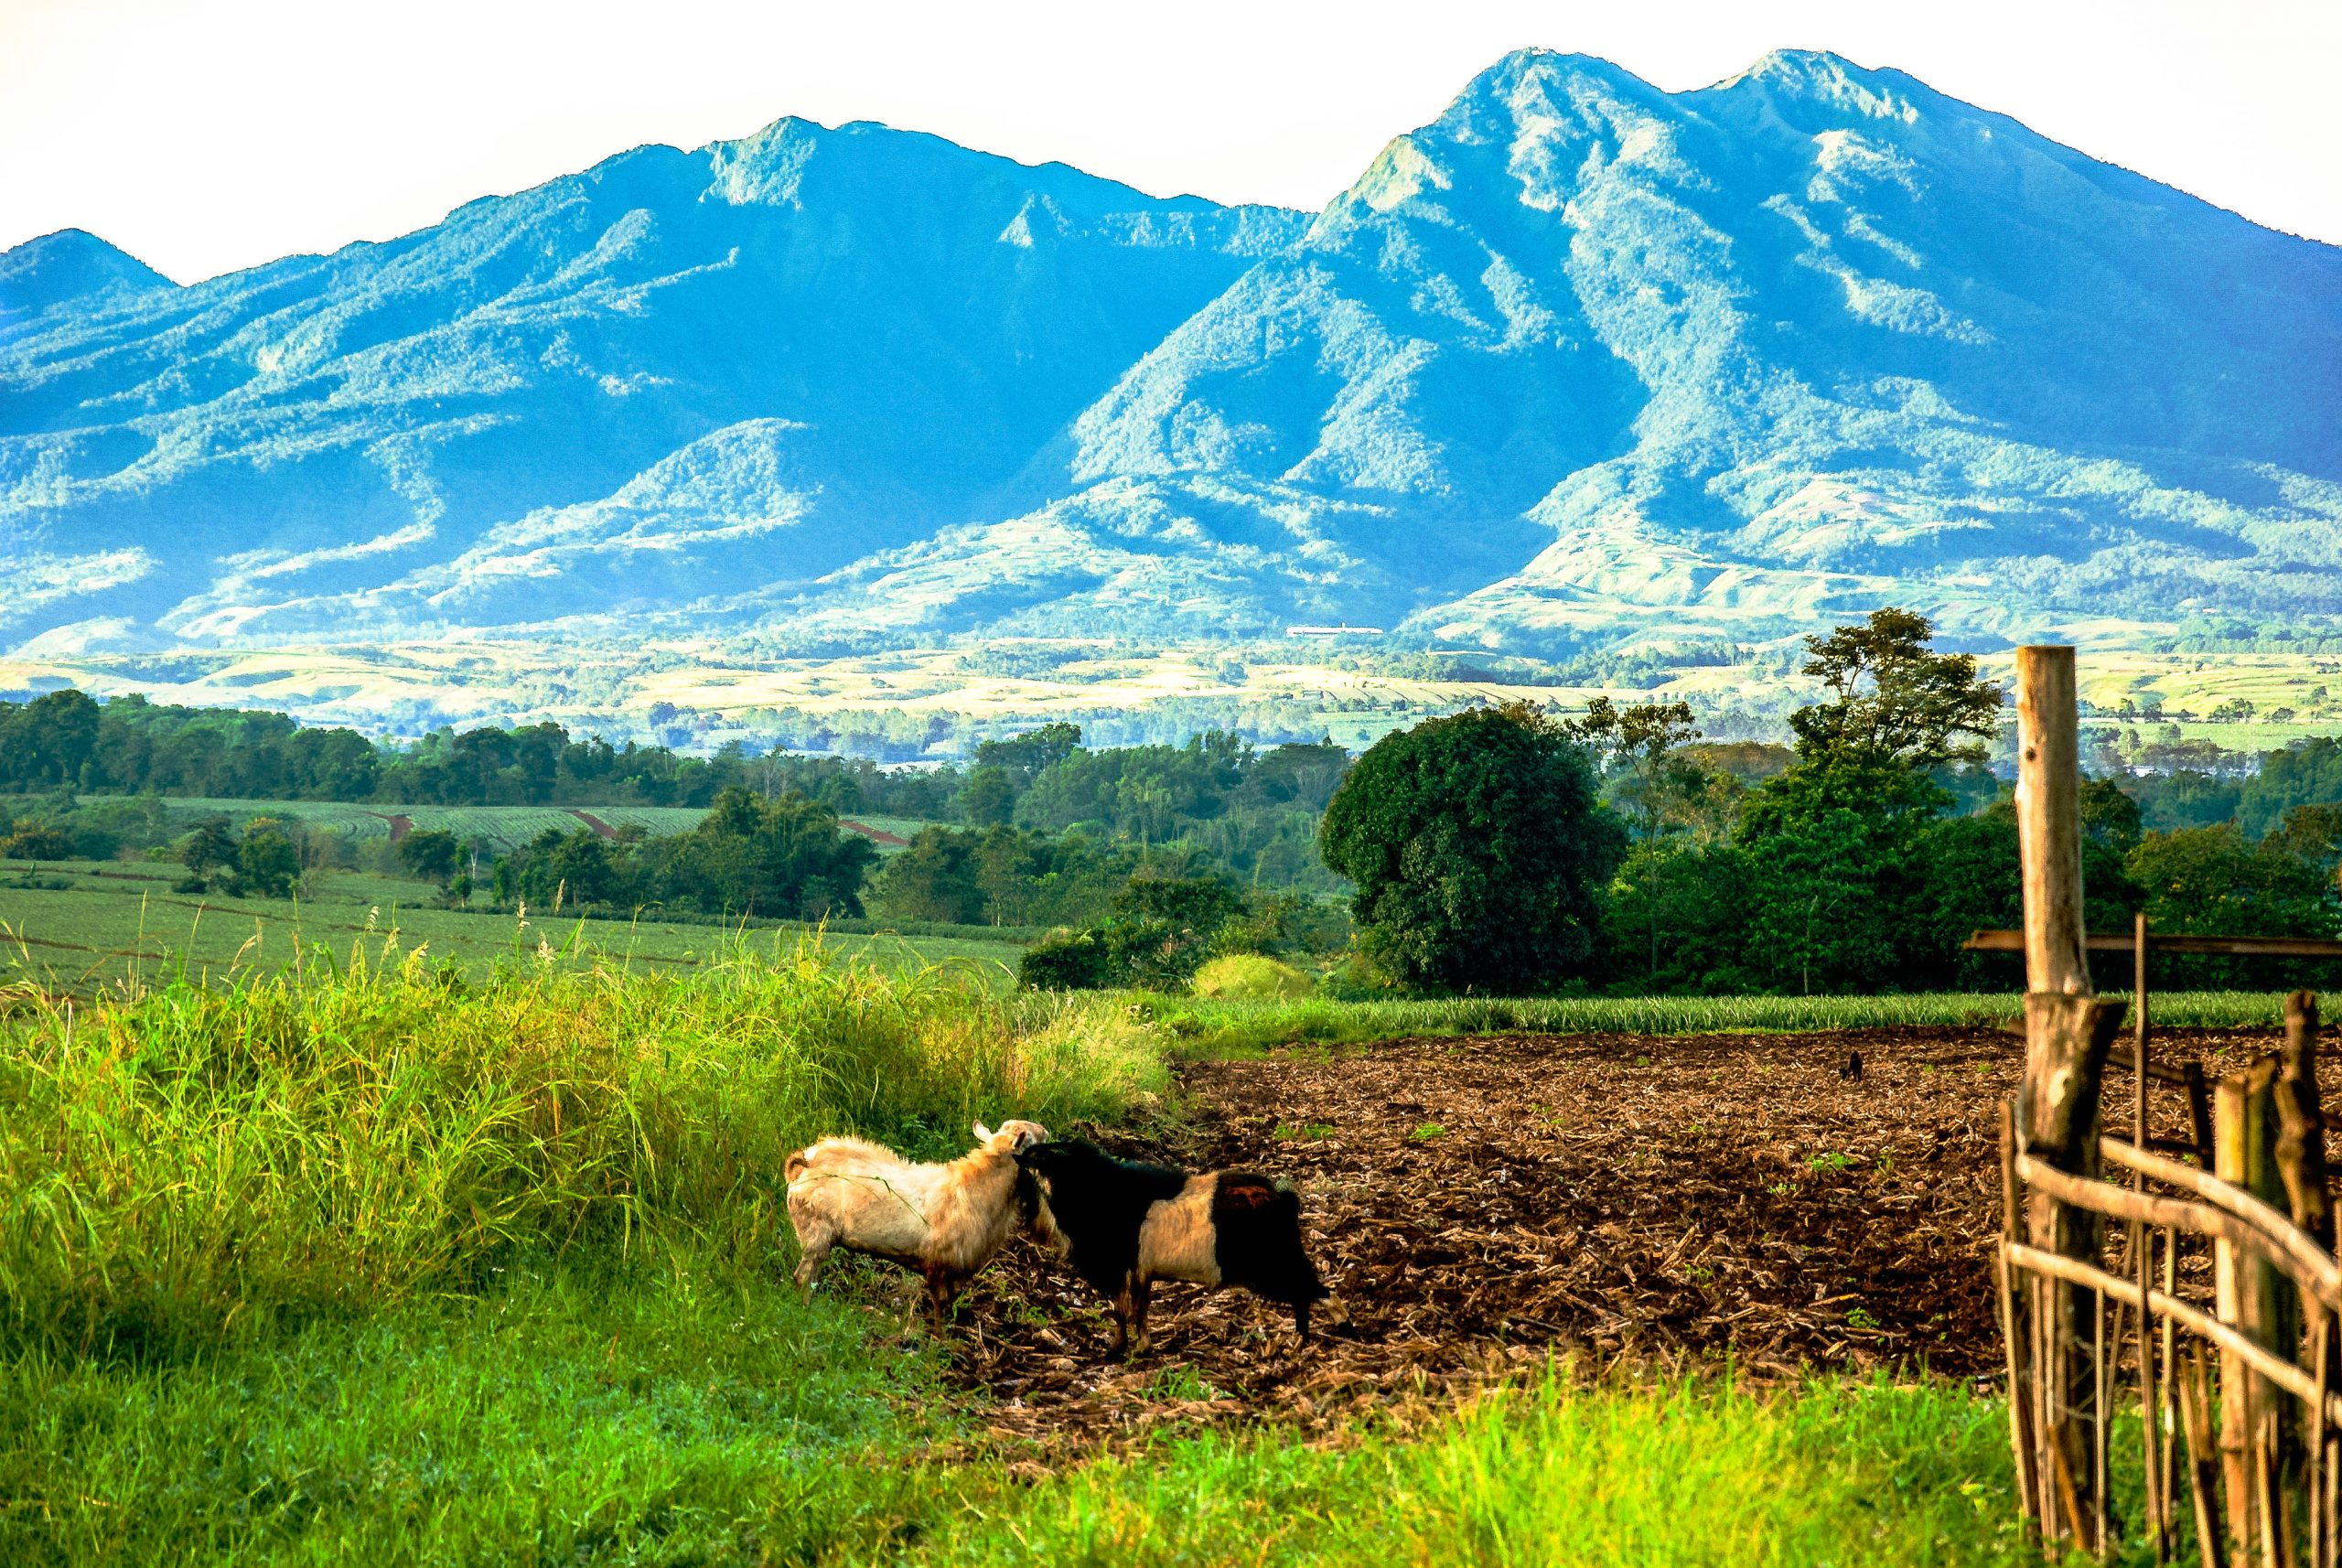 Farm animals stand on a grassy and wooded plain, backdropped by a towering green mountains (one of which is Mount Kitanglad, one of the highest mountains in the Philippines)